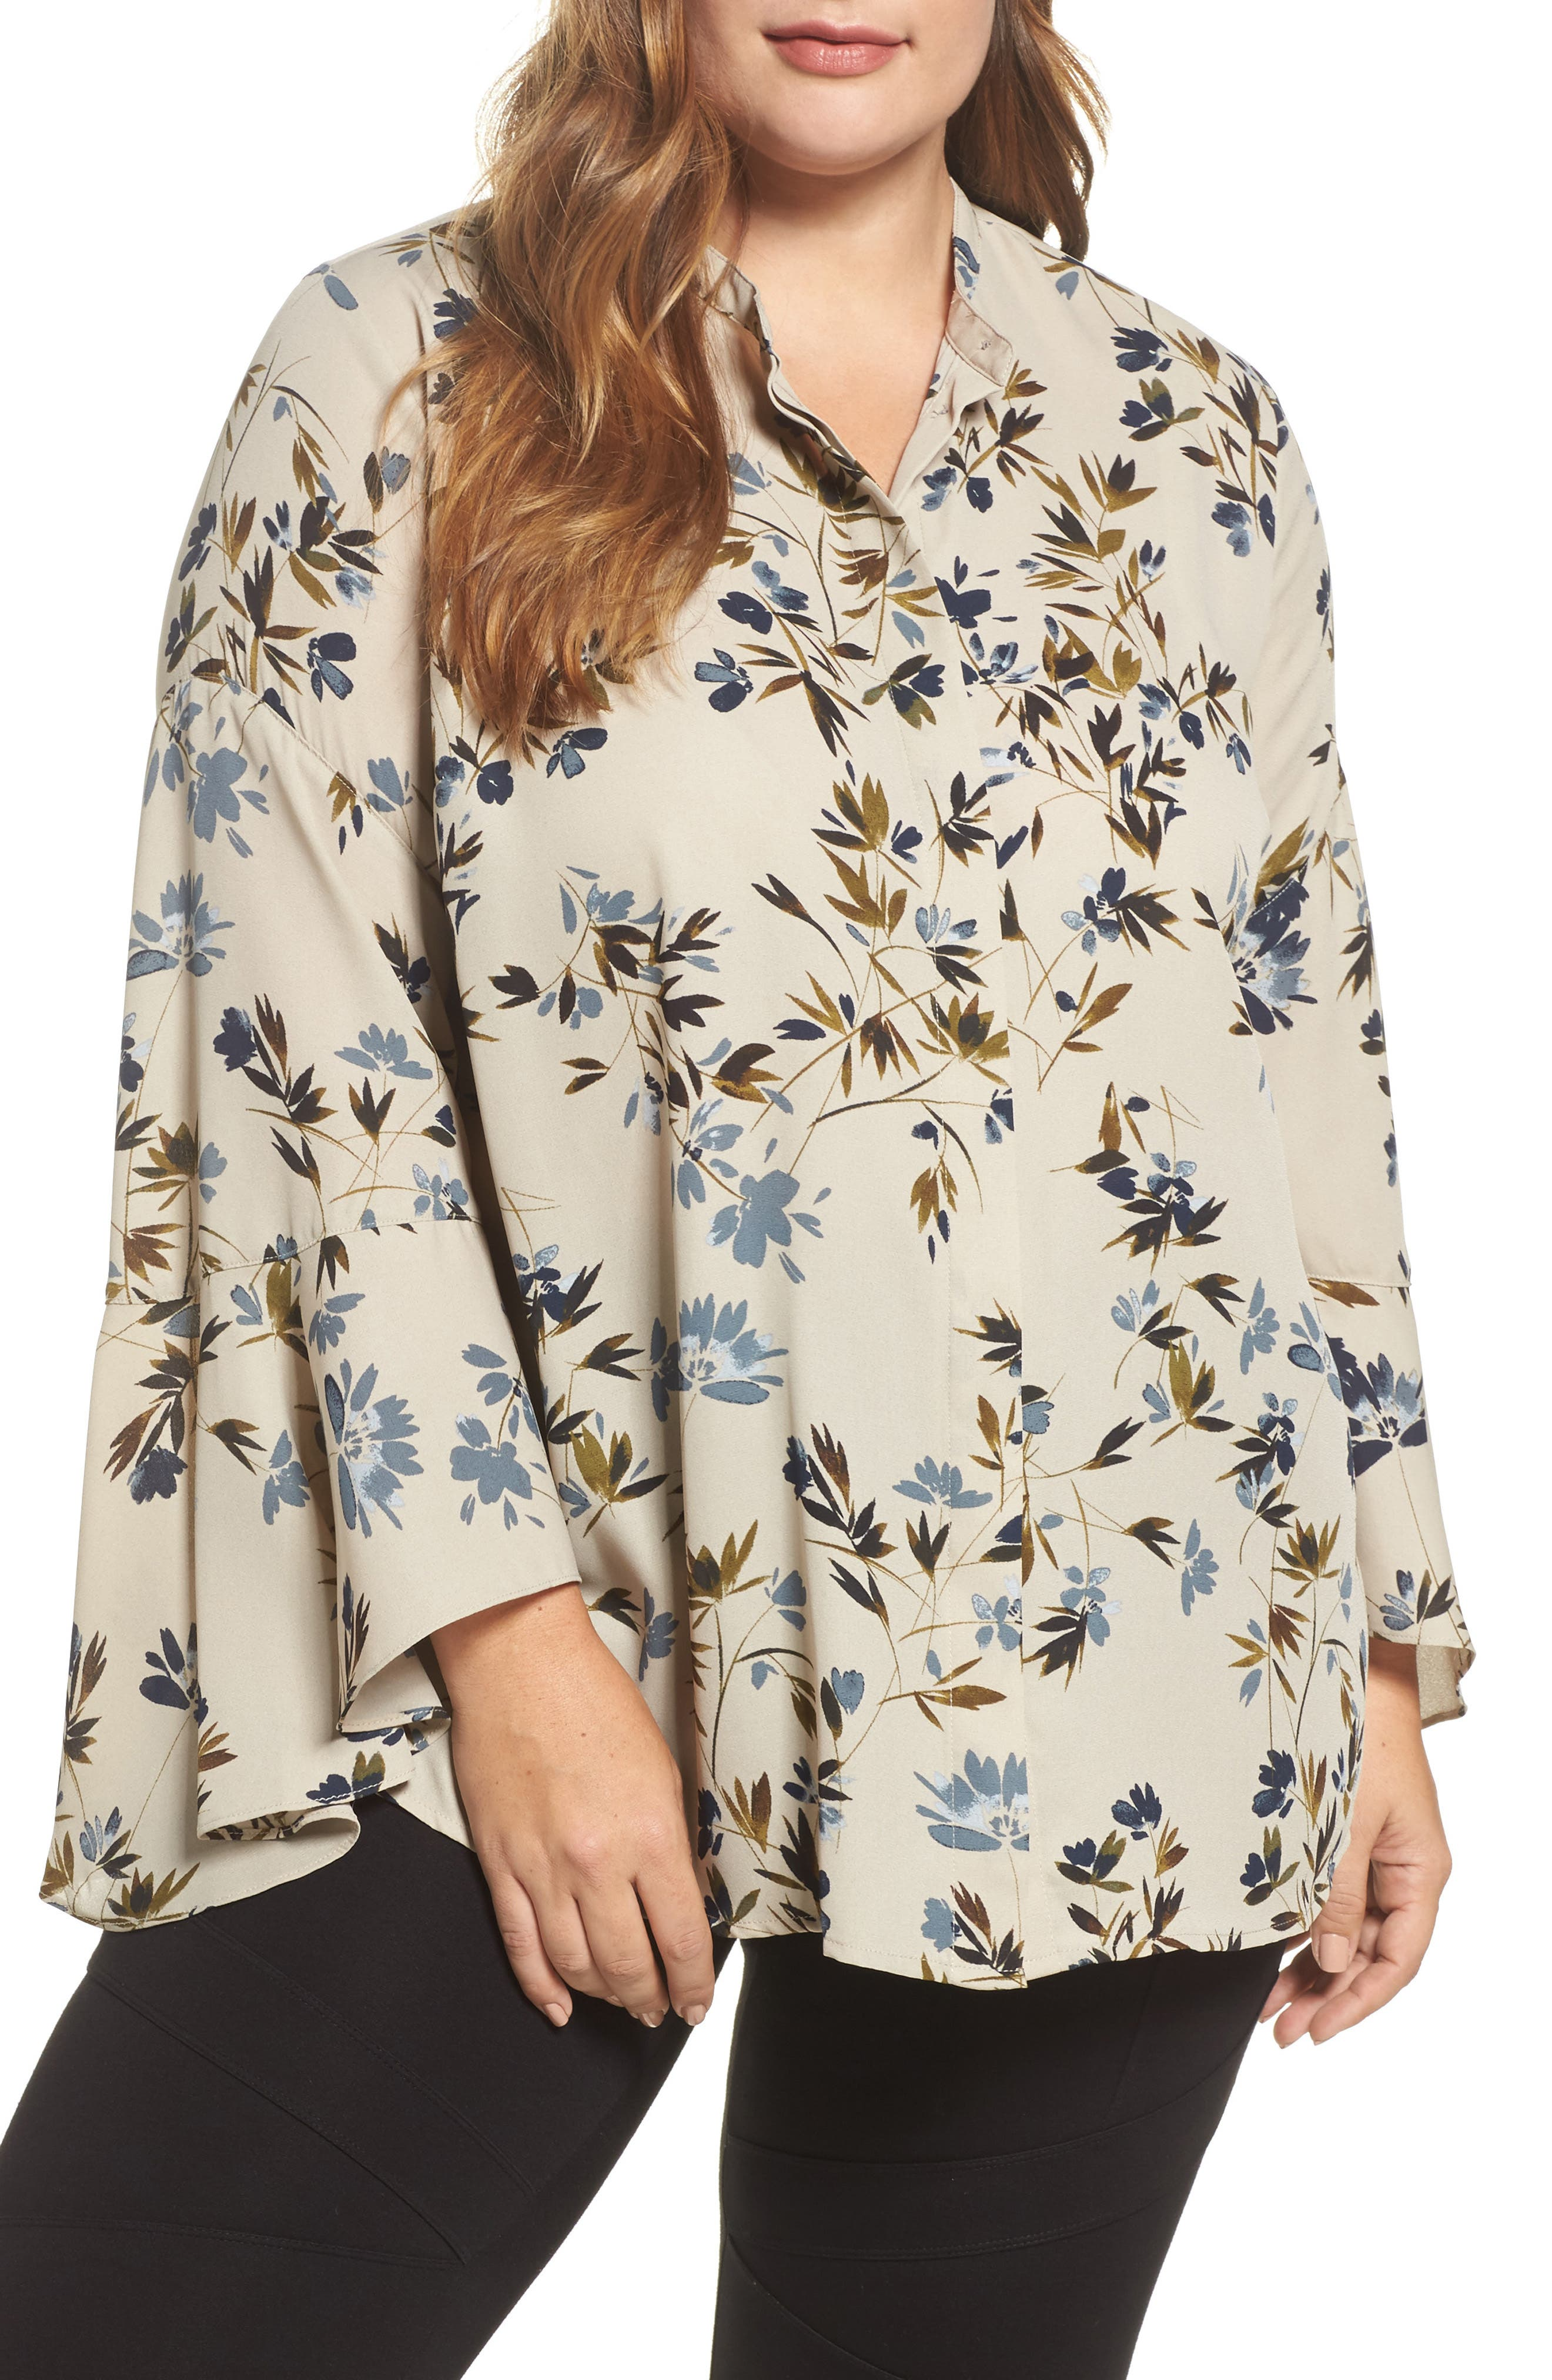 Alternate Image 1 Selected - Vince Camuto Timeless Bouquet Bell Sleeve Blouse (Plus Size)